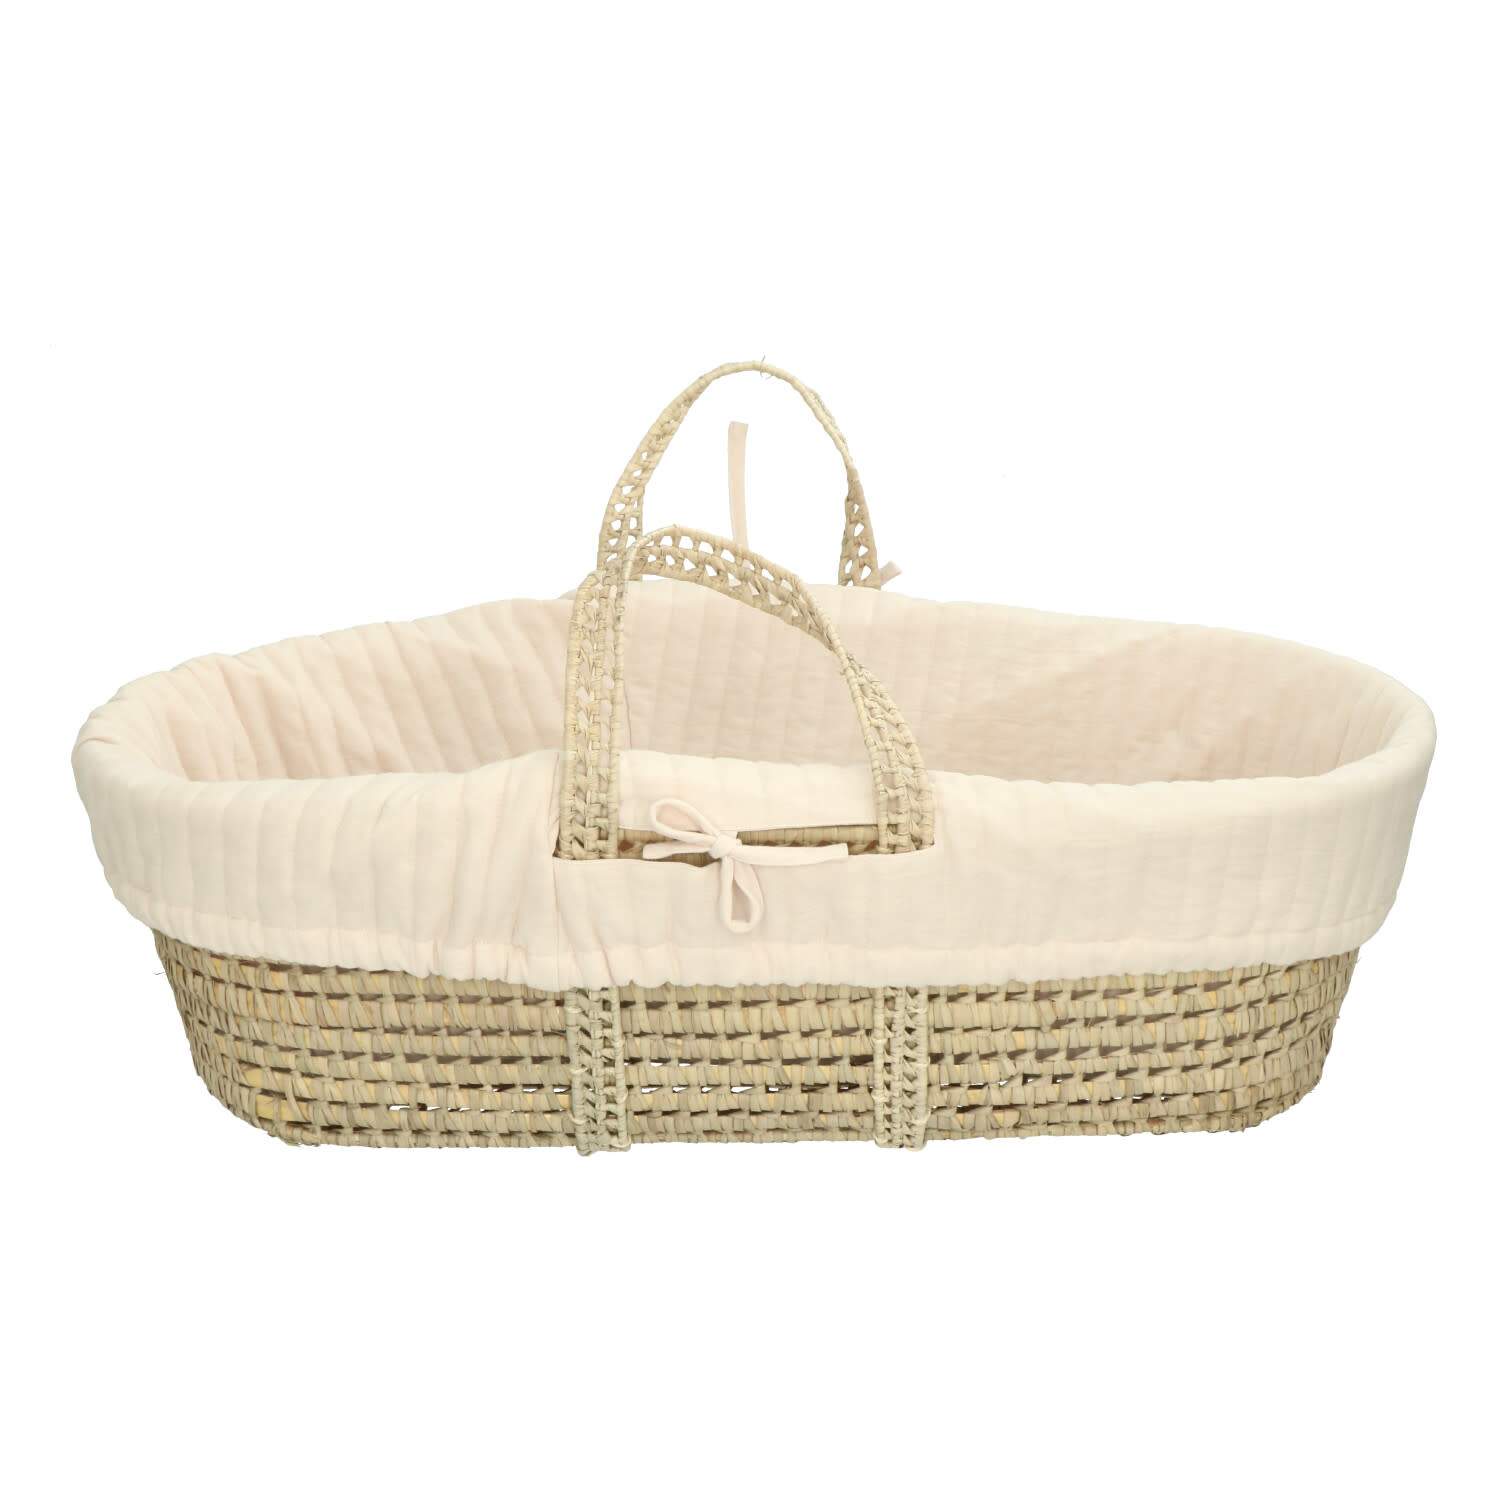 Marley moses basket with linen blossom-2